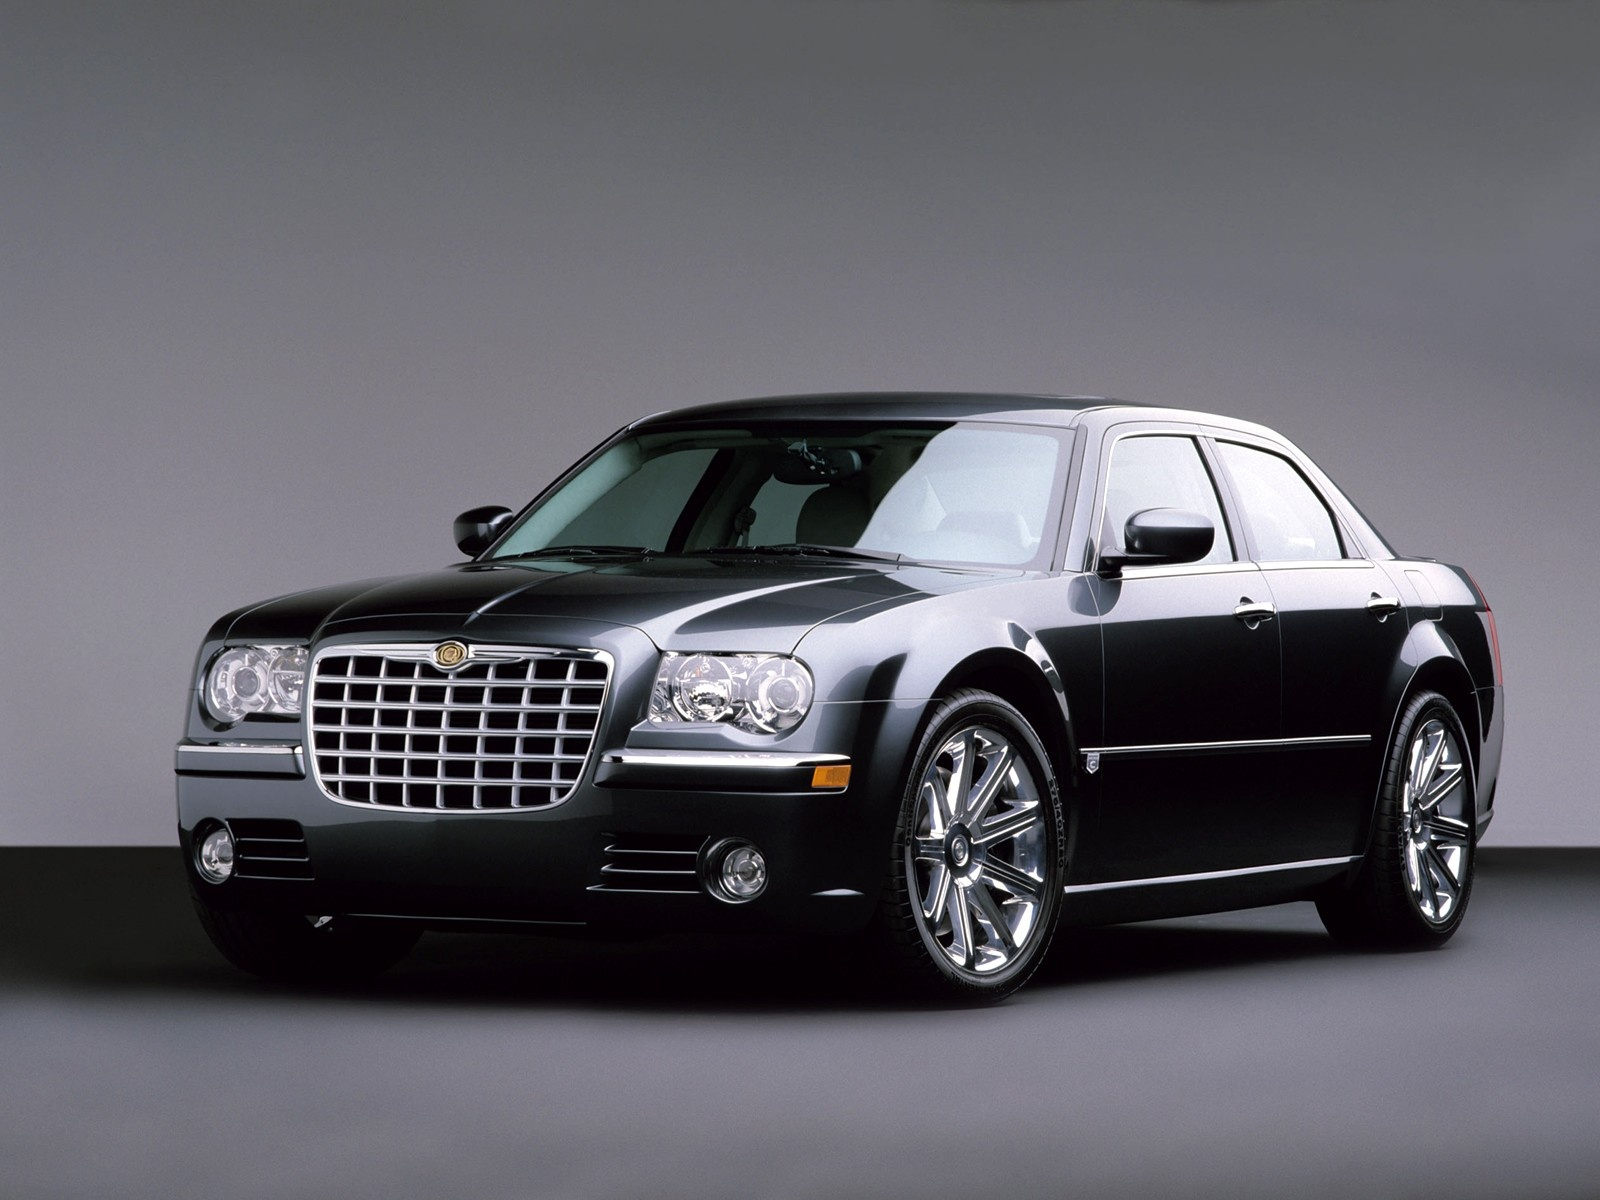 hight resolution of 2009 chrysler 300 review